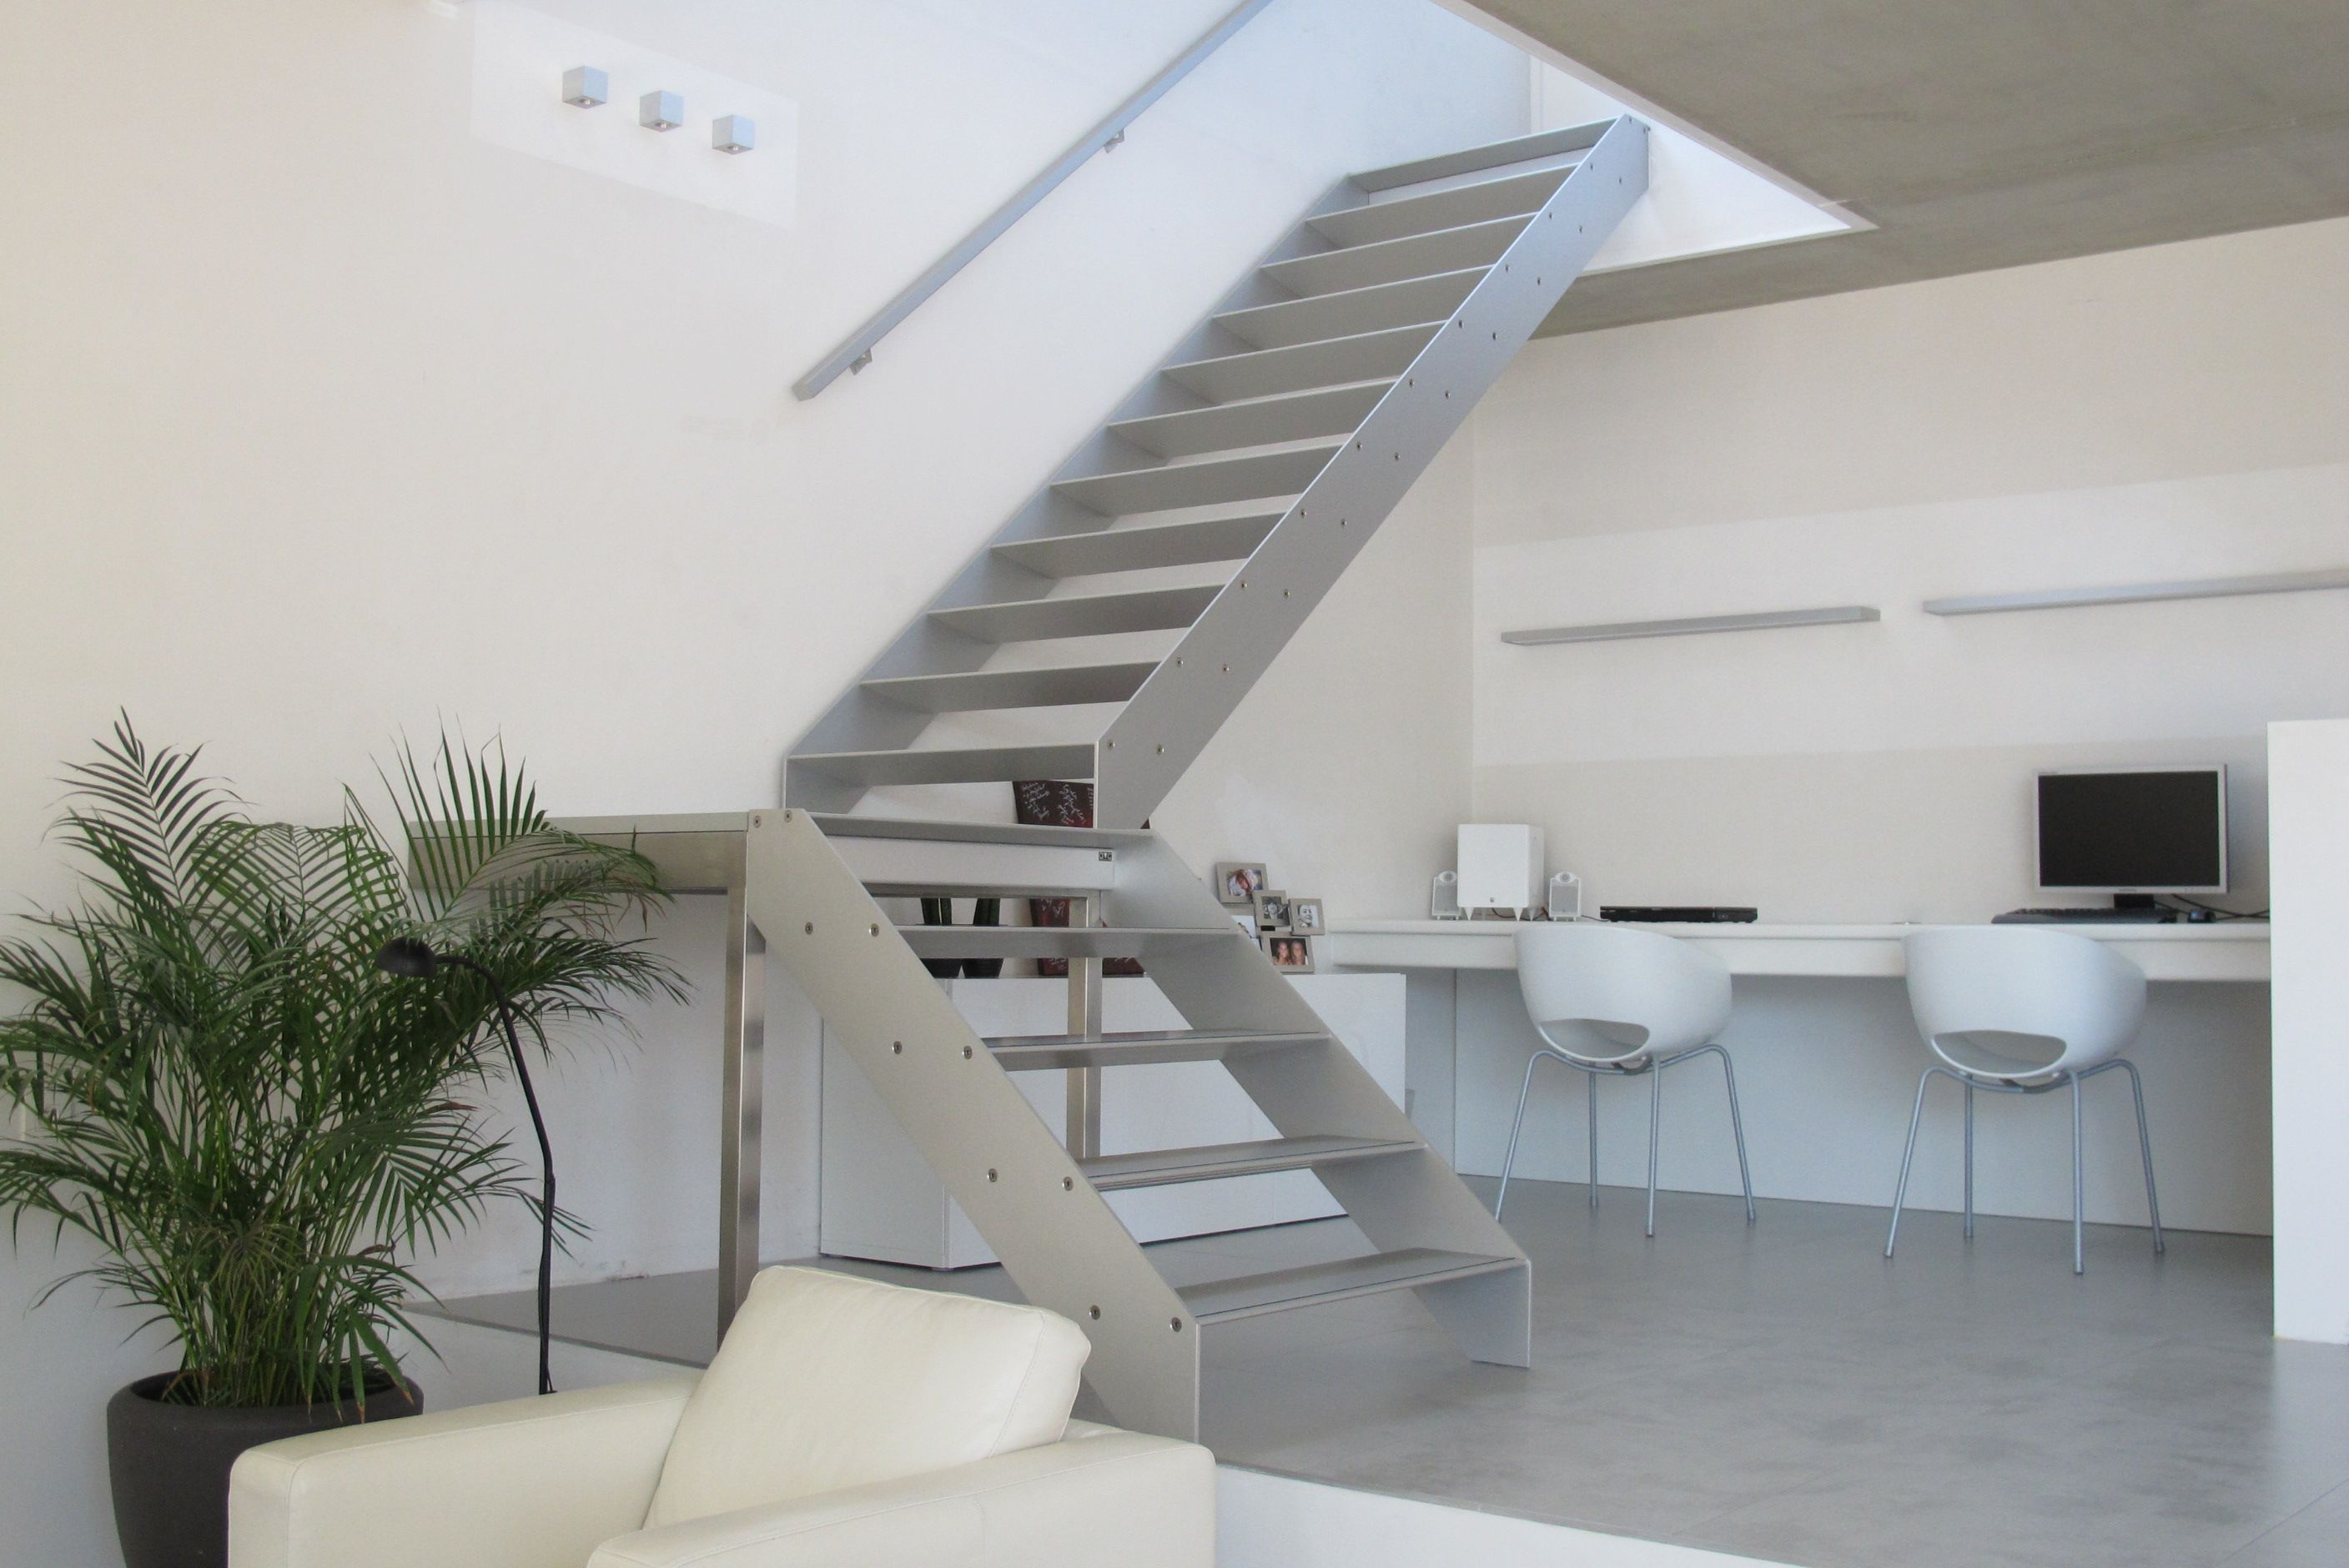 Concorde design staircase aluminium stairs avc for Escalier interieur design